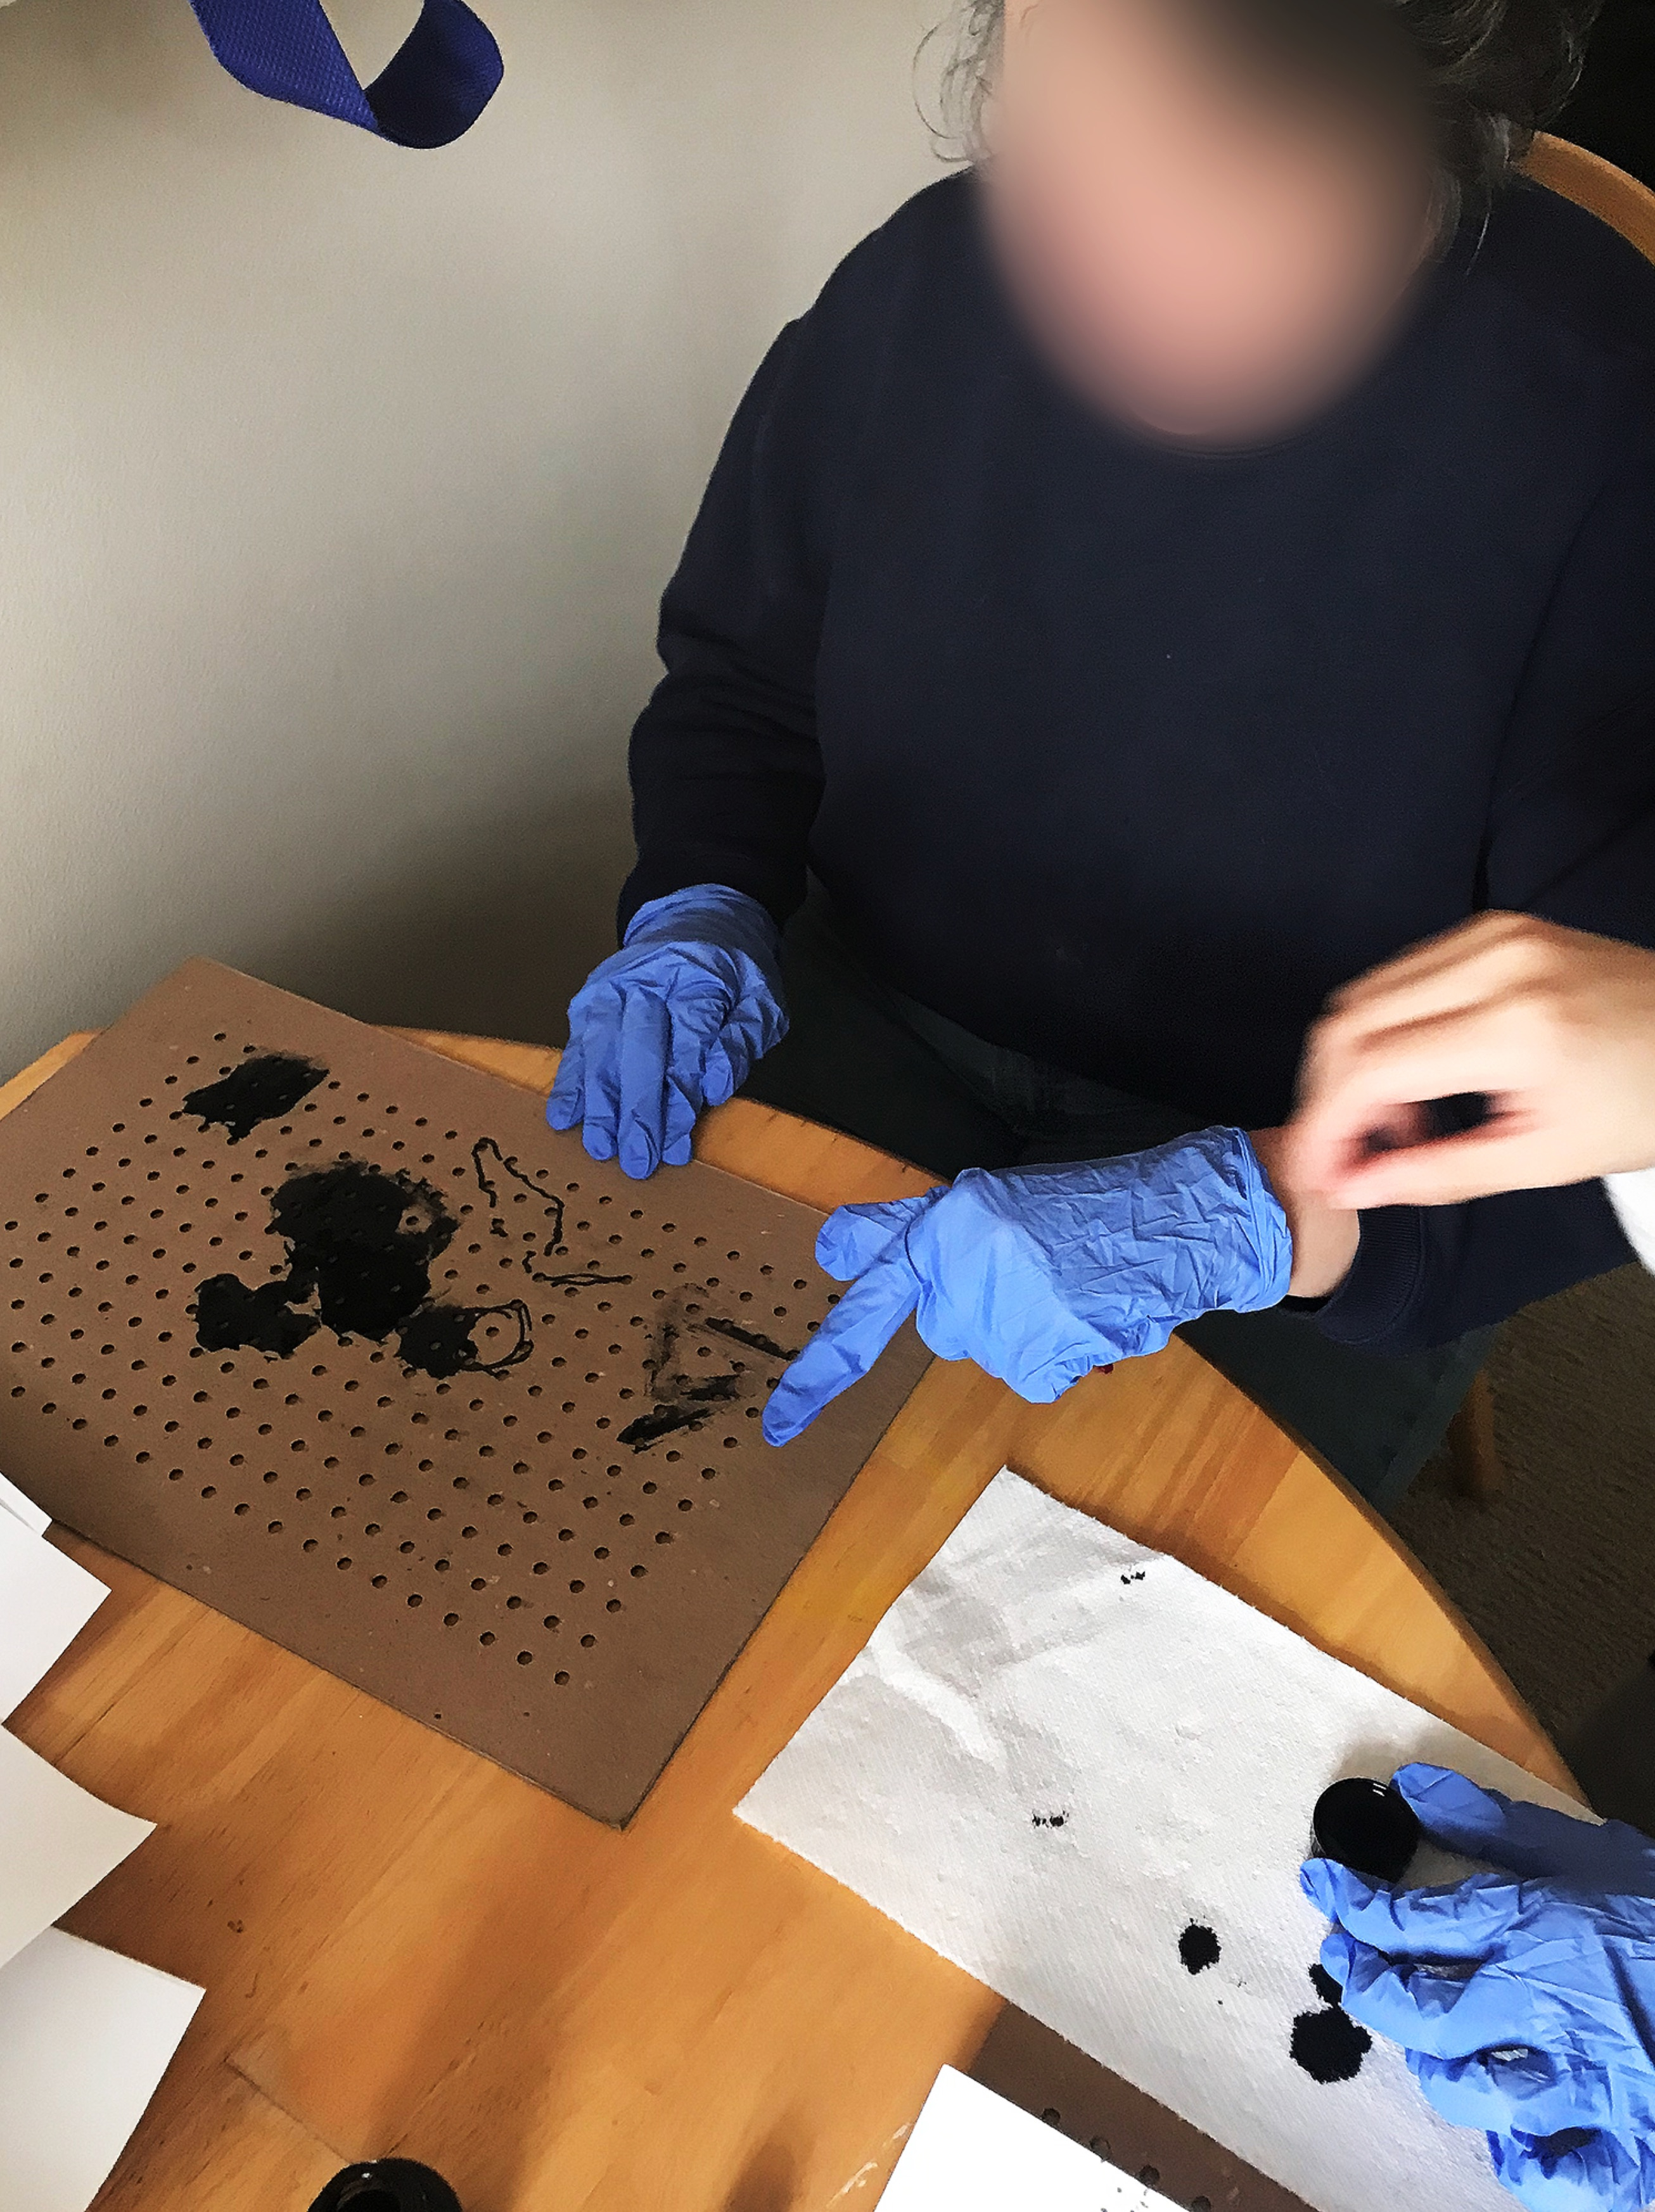 Contextual Inquiry image showing a visually impaired participant who has difficulty drawing with fingers because of difficulty with motor skills.